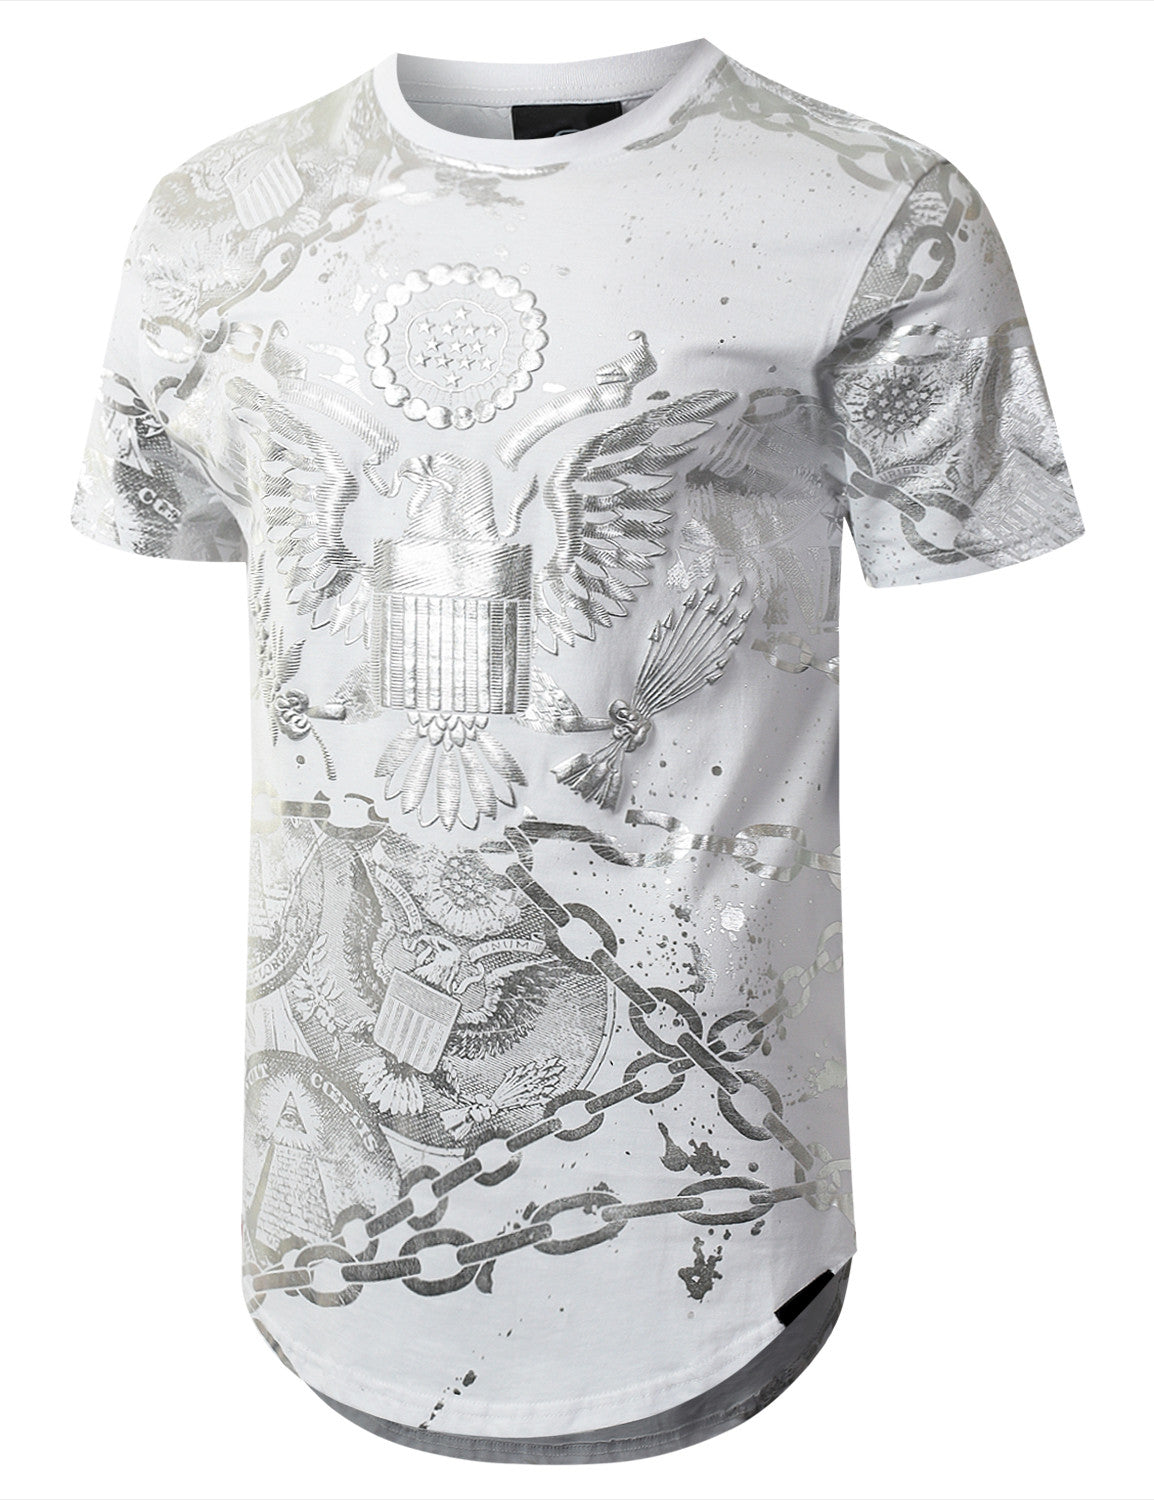 WHITE Gold Foil Chain Graphic Longline T-shirt - URBANCREWS